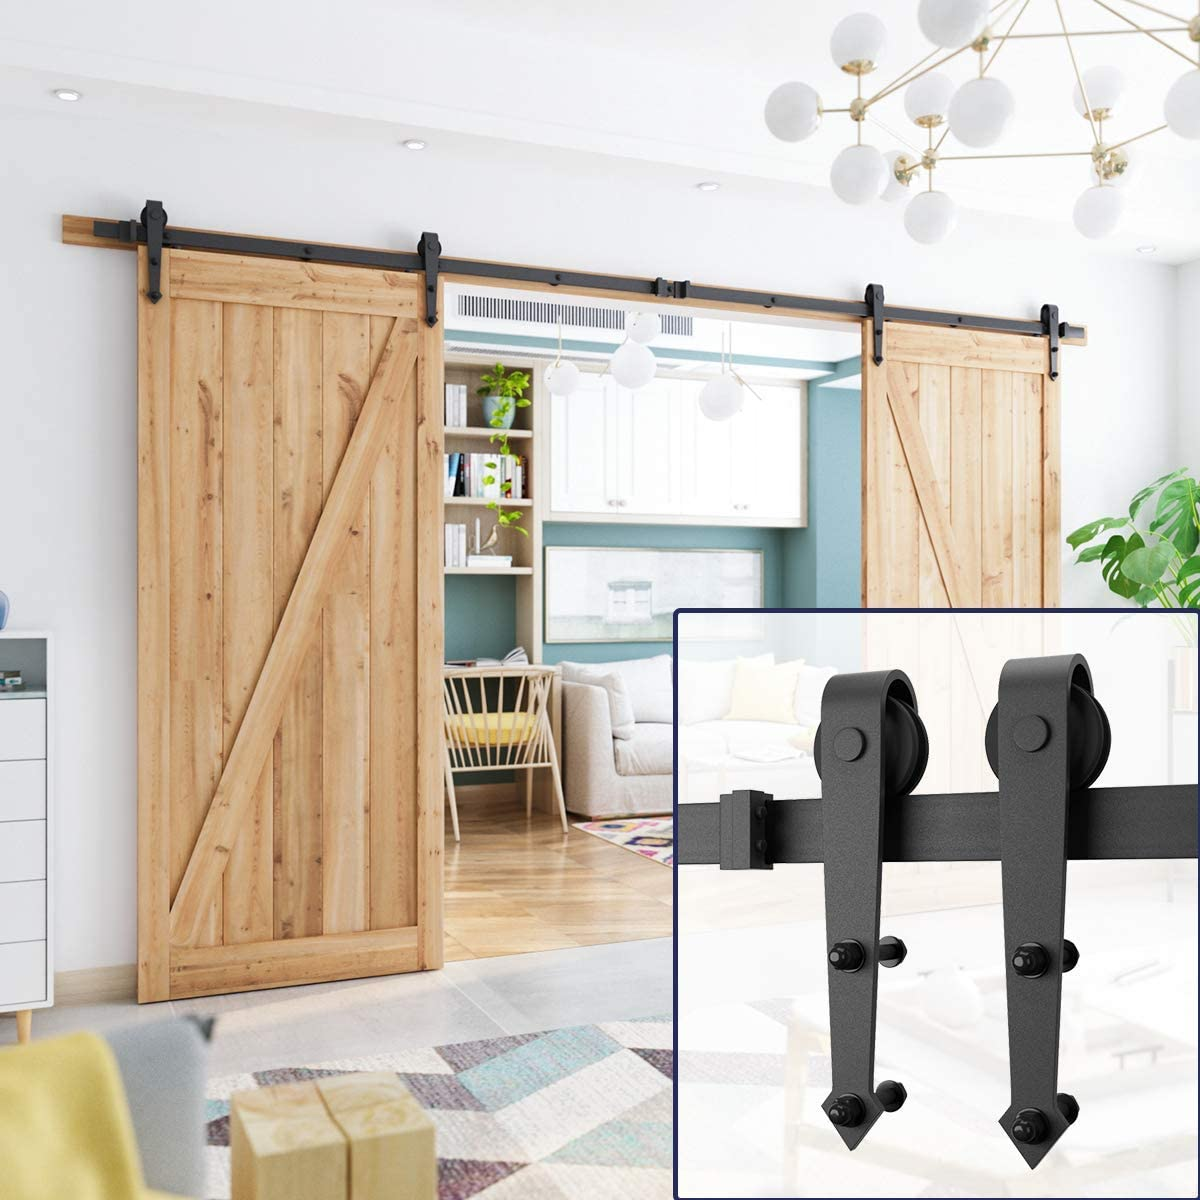 SMARTSTANDARD 6.6ft Heavy Duty Sturdy Sliding Barn Door Hardware Kit Smoothly /& Quietly-Easy to install-Includes Step-By-Step Installation Instruction Fit 40 Wide Door Panel Bigwheel T Shape Hanger